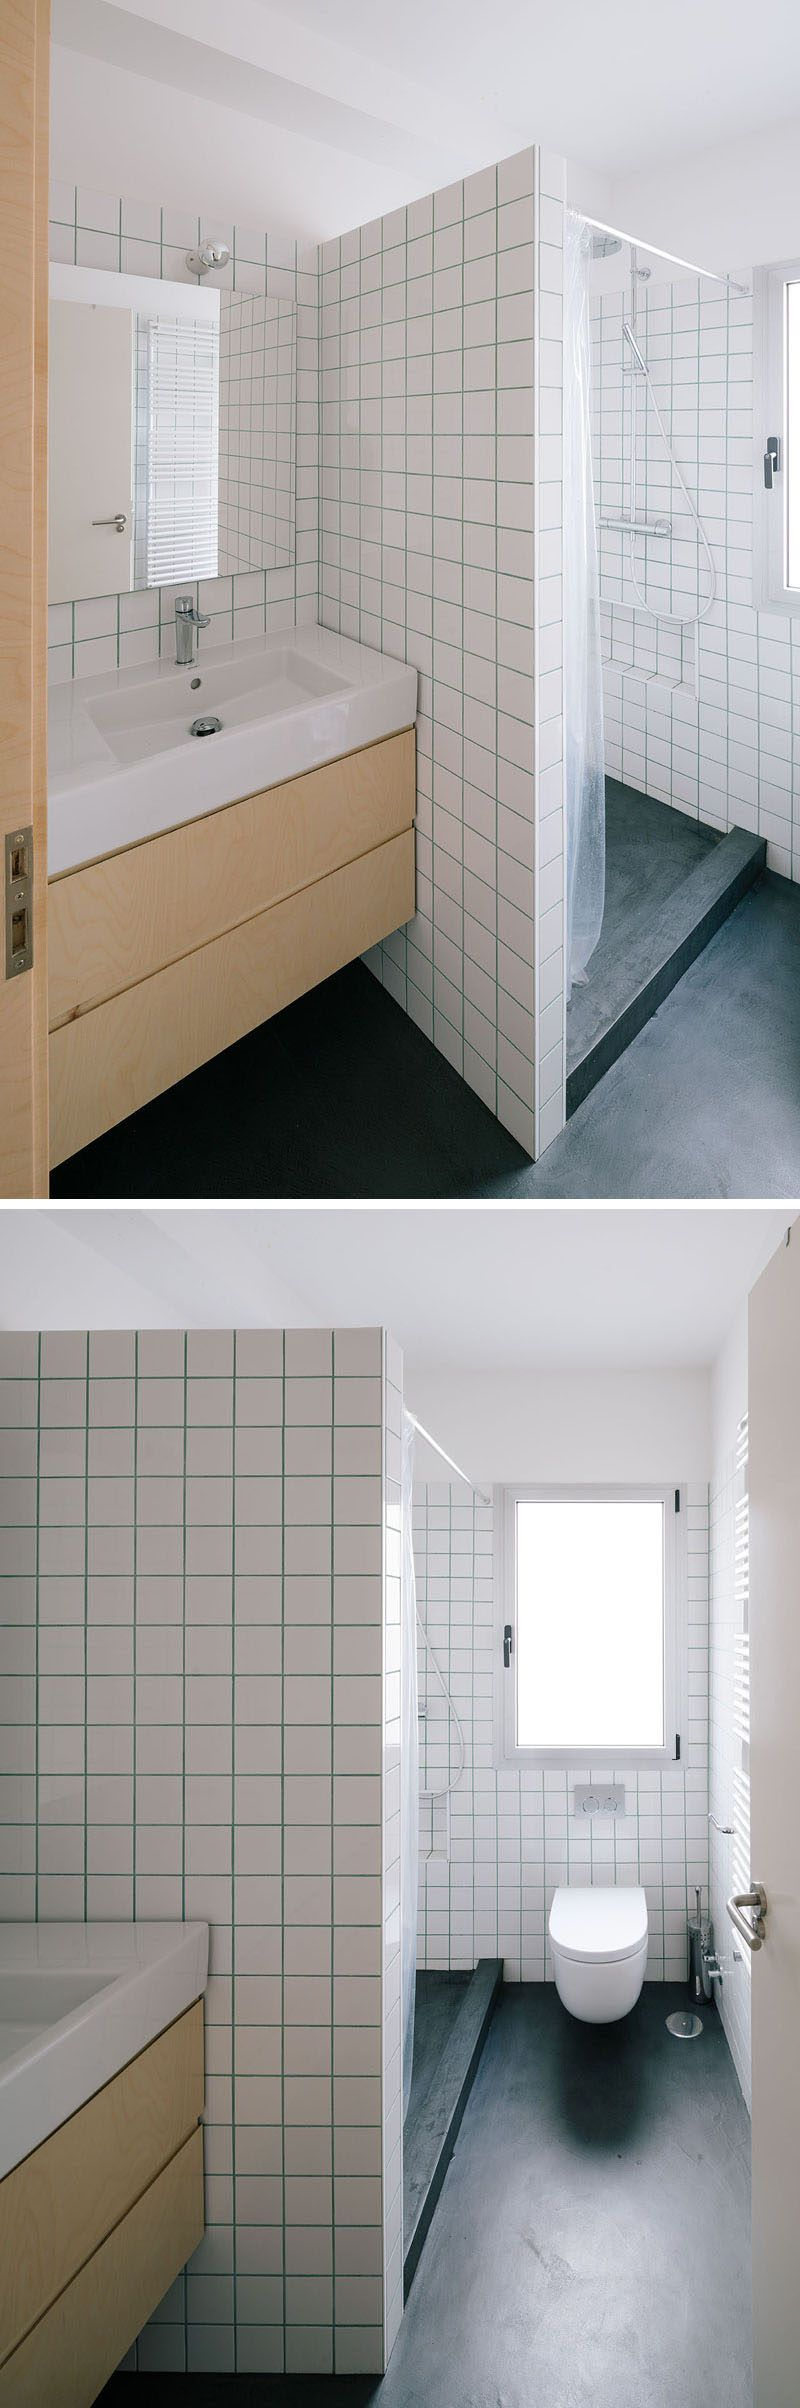 Colored Grout And New Tile Create Fresh Bathroom Look: Minimalist Bath. Bluish-Green Colored Grout Breaks Up The